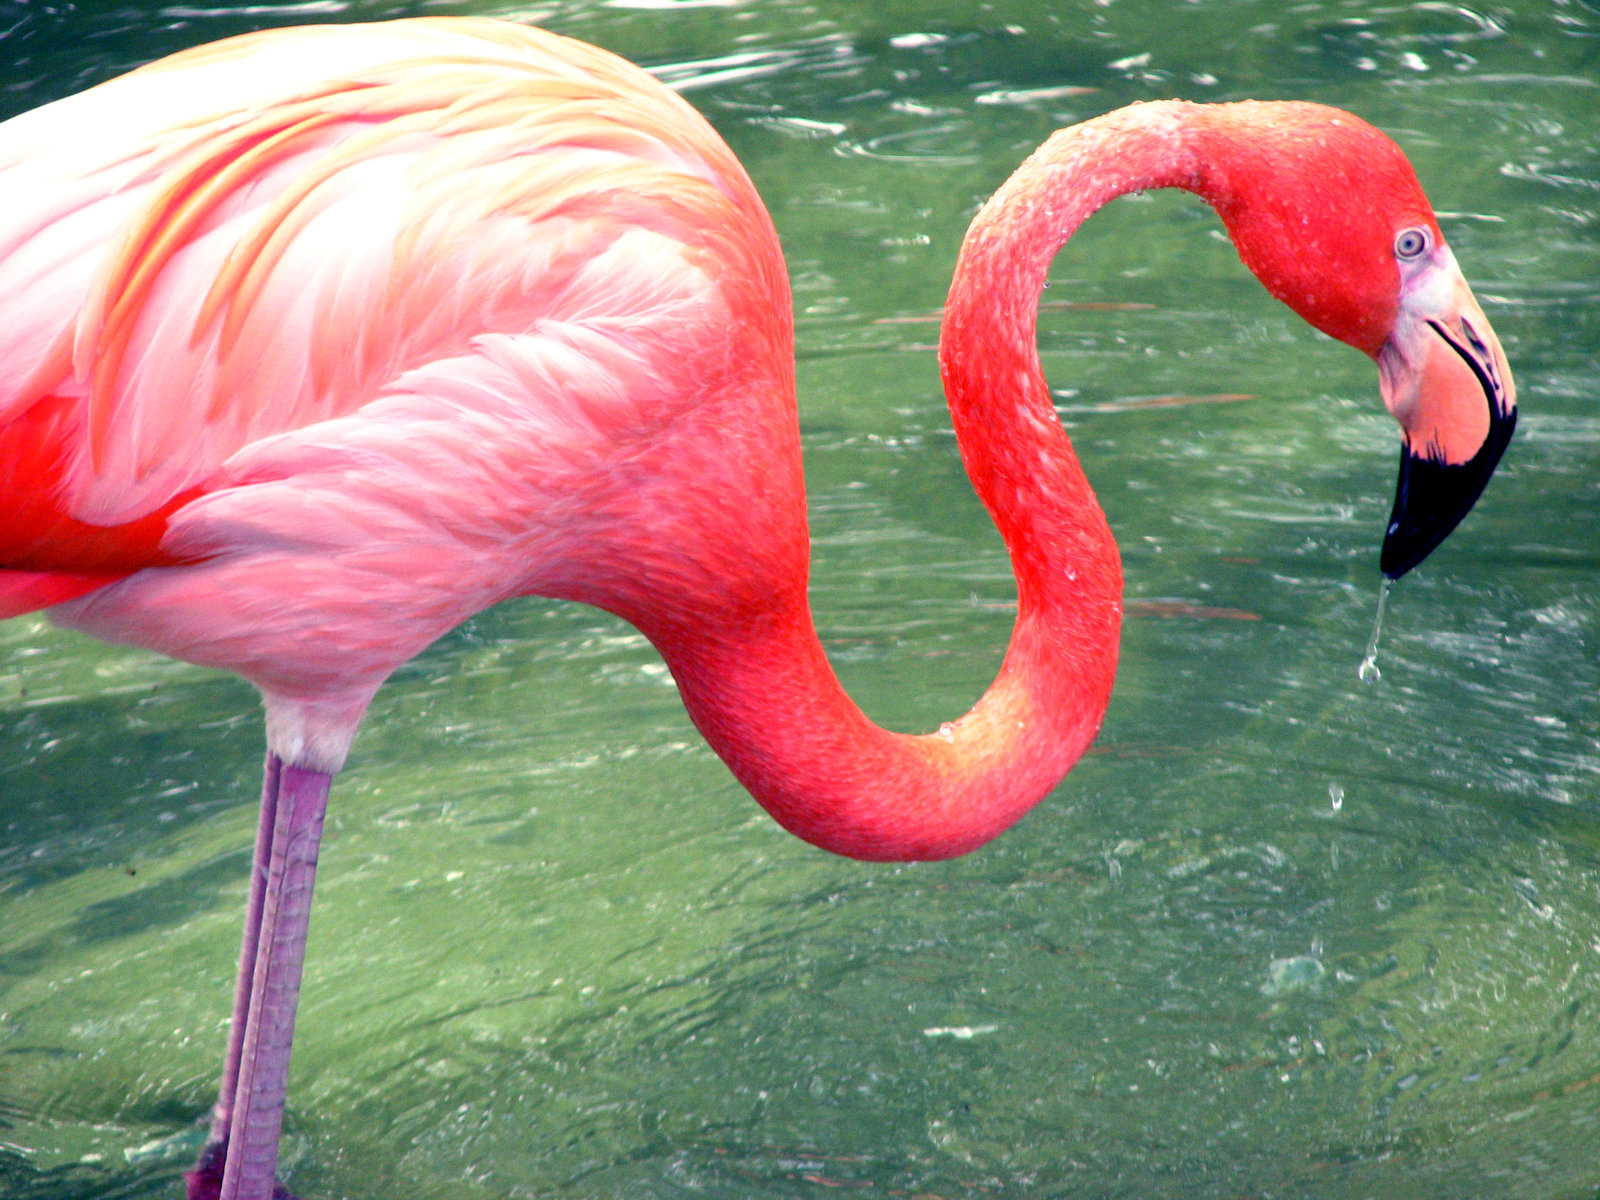 flamingos images flamingo hd wallpaper and background